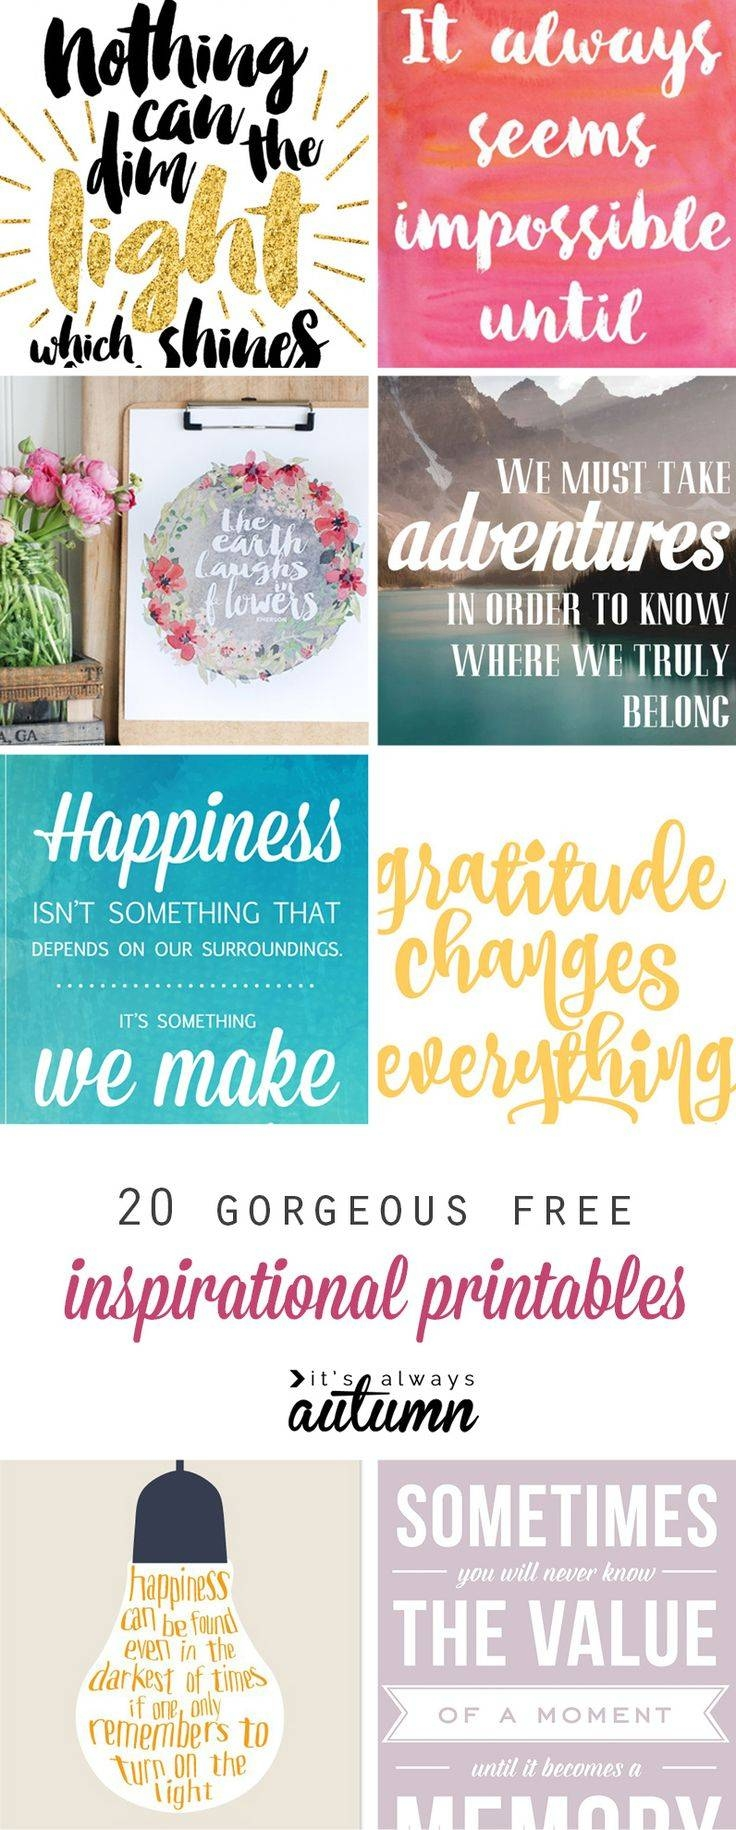 Decor : 87 Diy Washi Tape Wall Decal Designrulz 1 Modern And Pertaining To Recent Large Inspirational Wall Art (View 12 of 20)